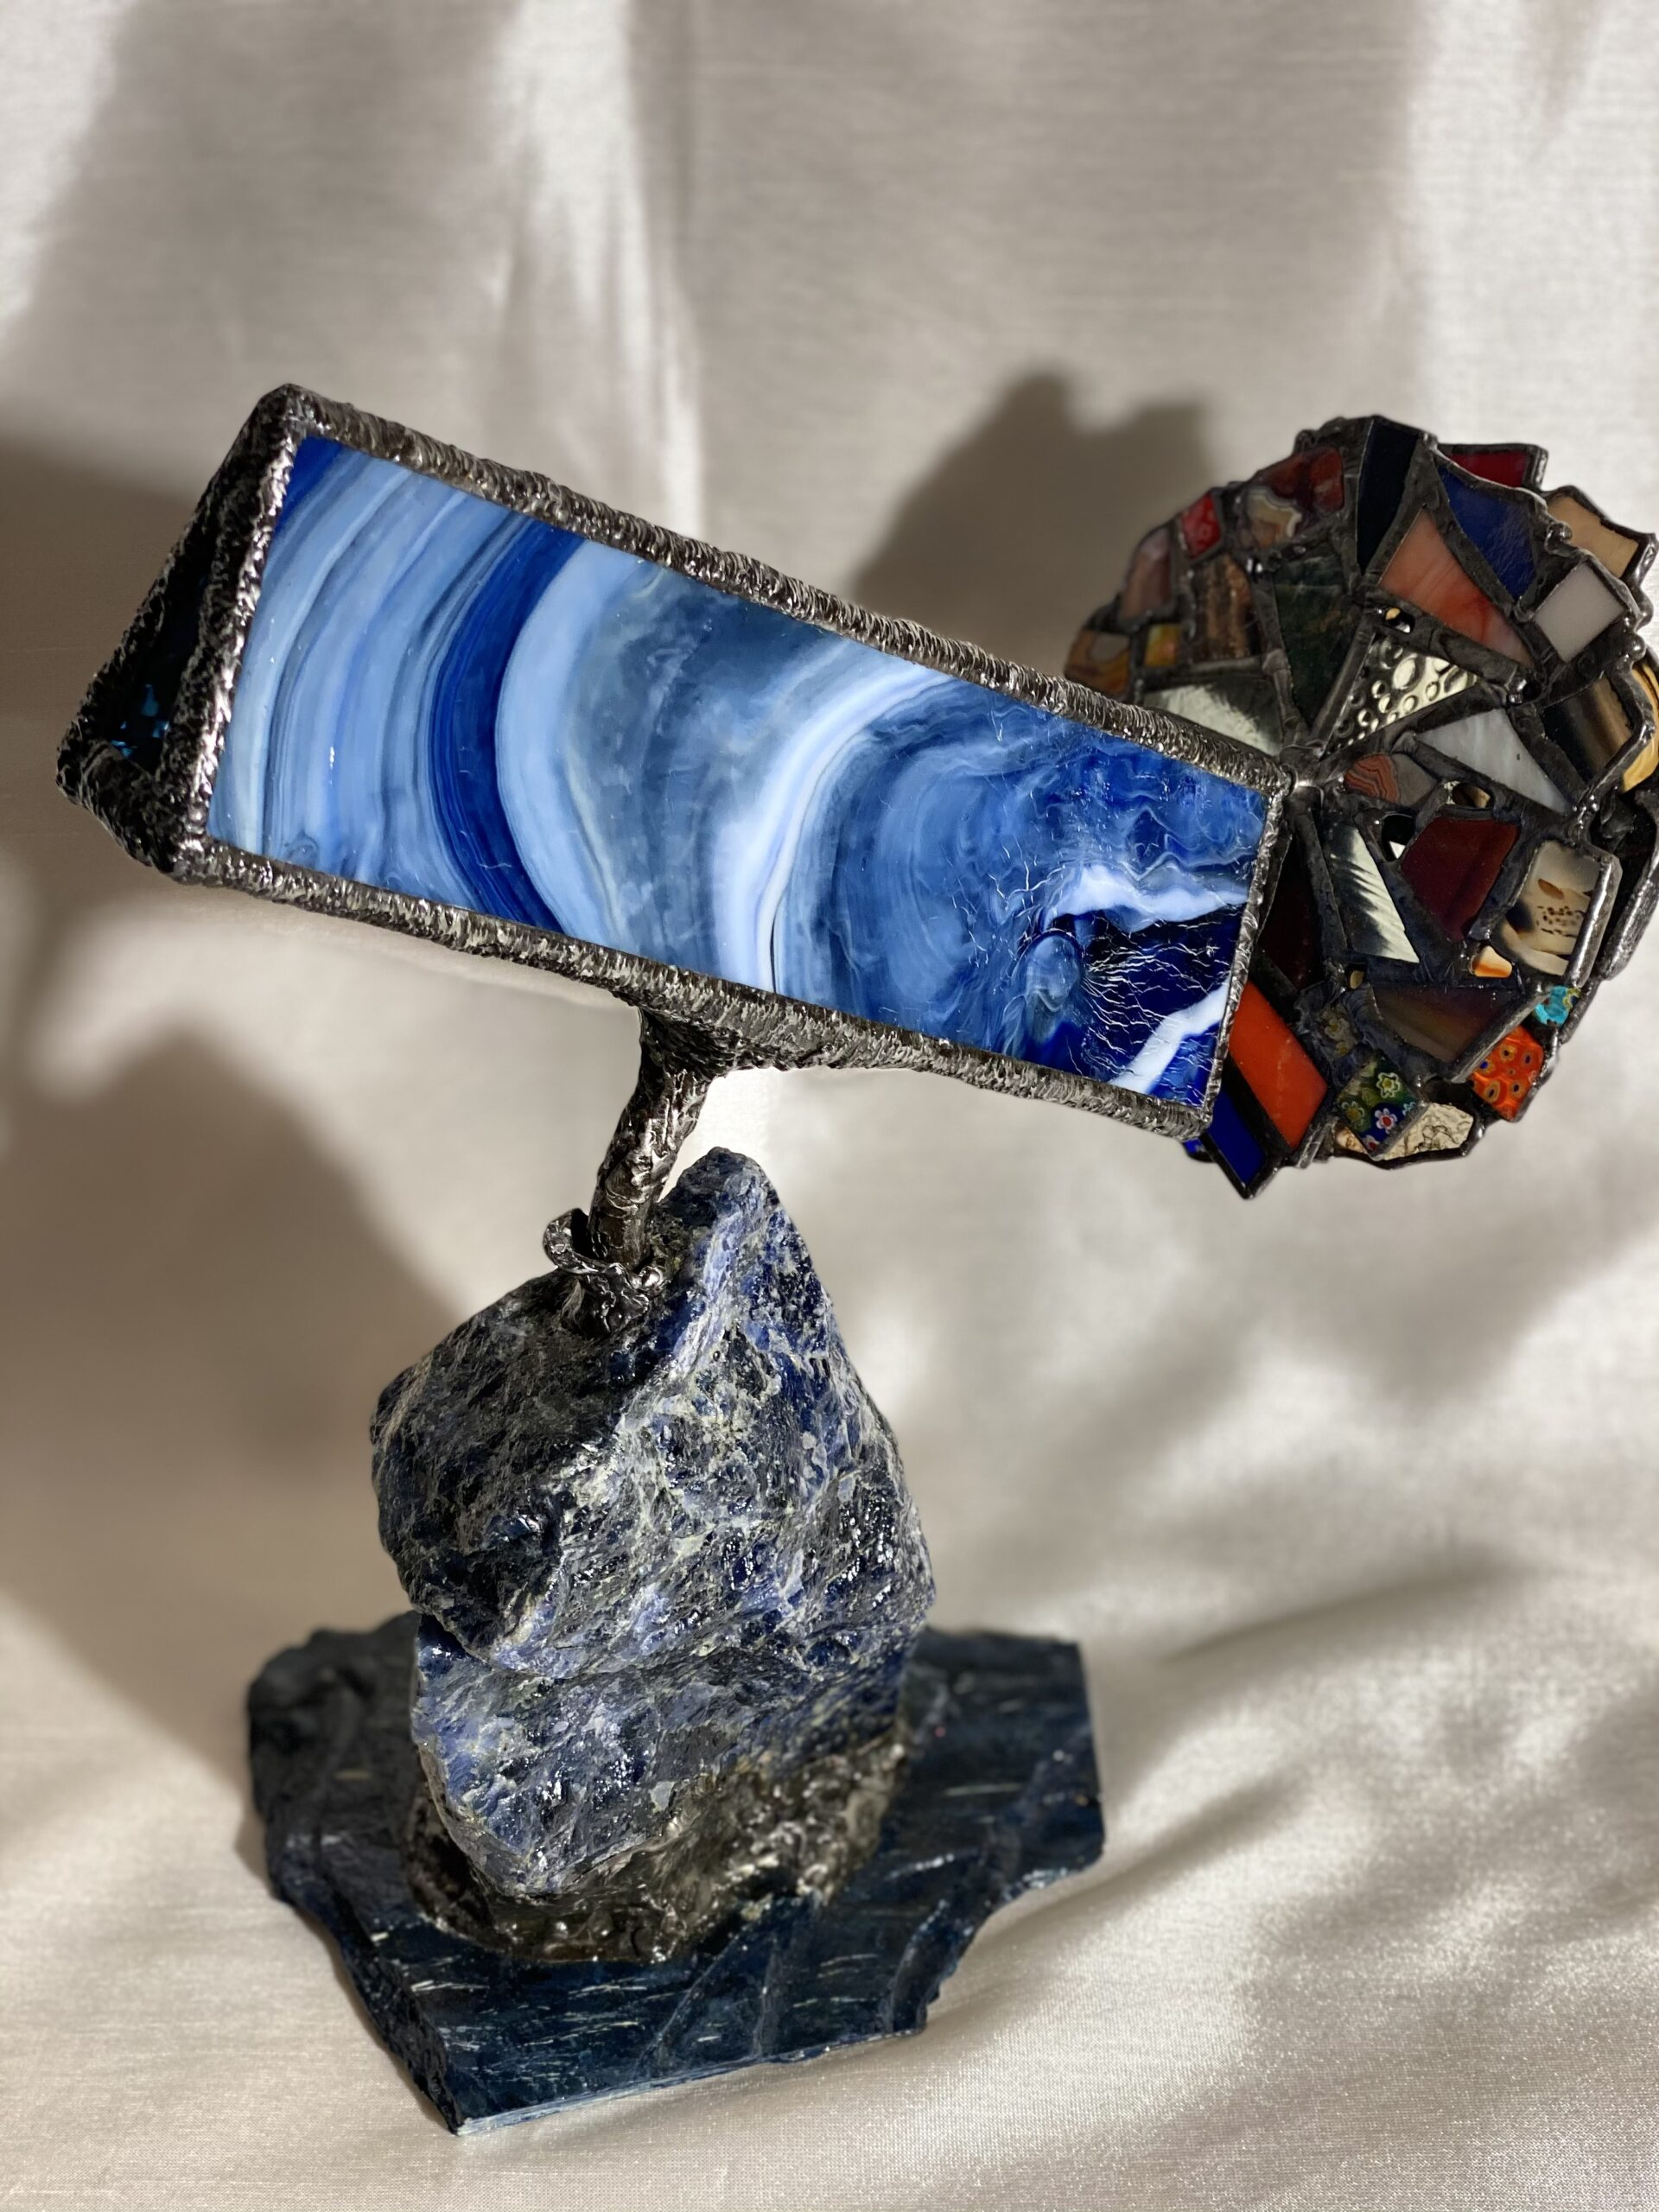 Blue sodalite parlor scope. Etsy:nebraskascopesstudio